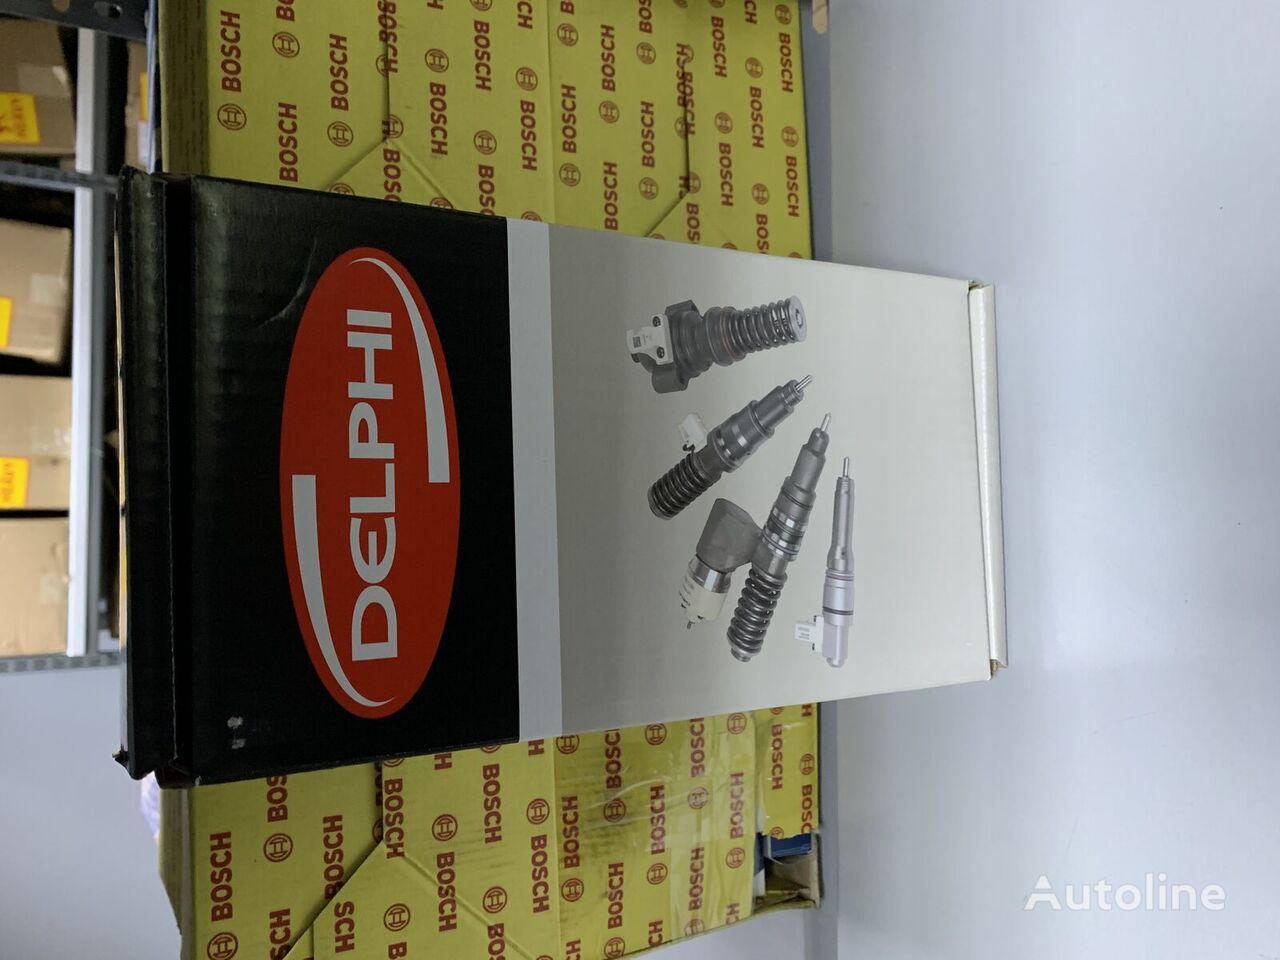 Injector  DELPHI 2015-2020 other engine spare part for DAF Daf series tractor unit